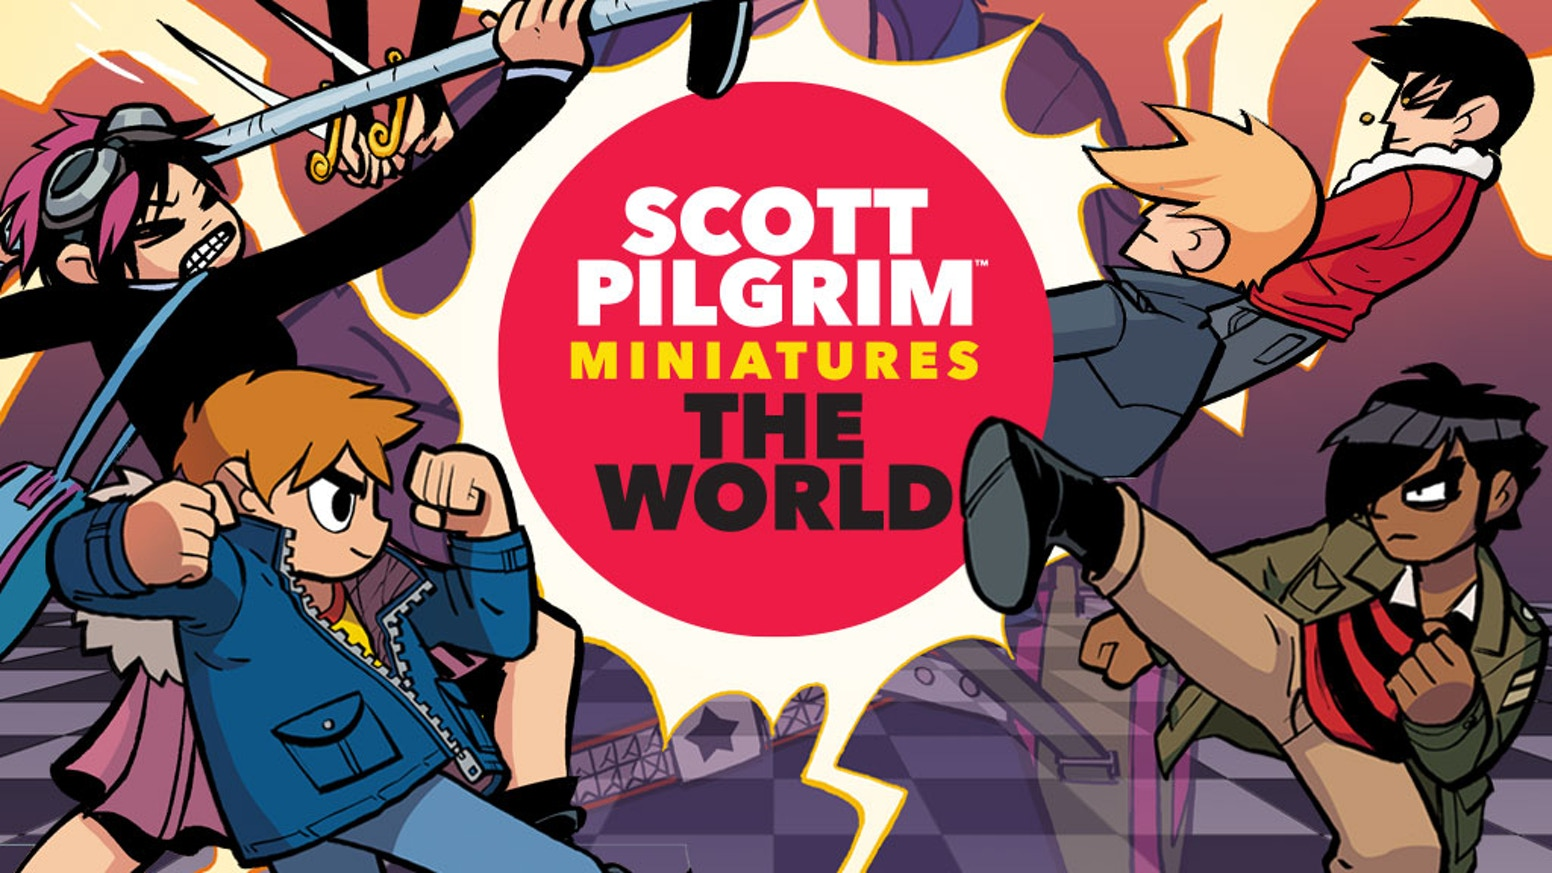 Scott Pilgrim Miniatures the World with full-color epic miniatures of all your favorite characters battling on dynamic pop-up boards!